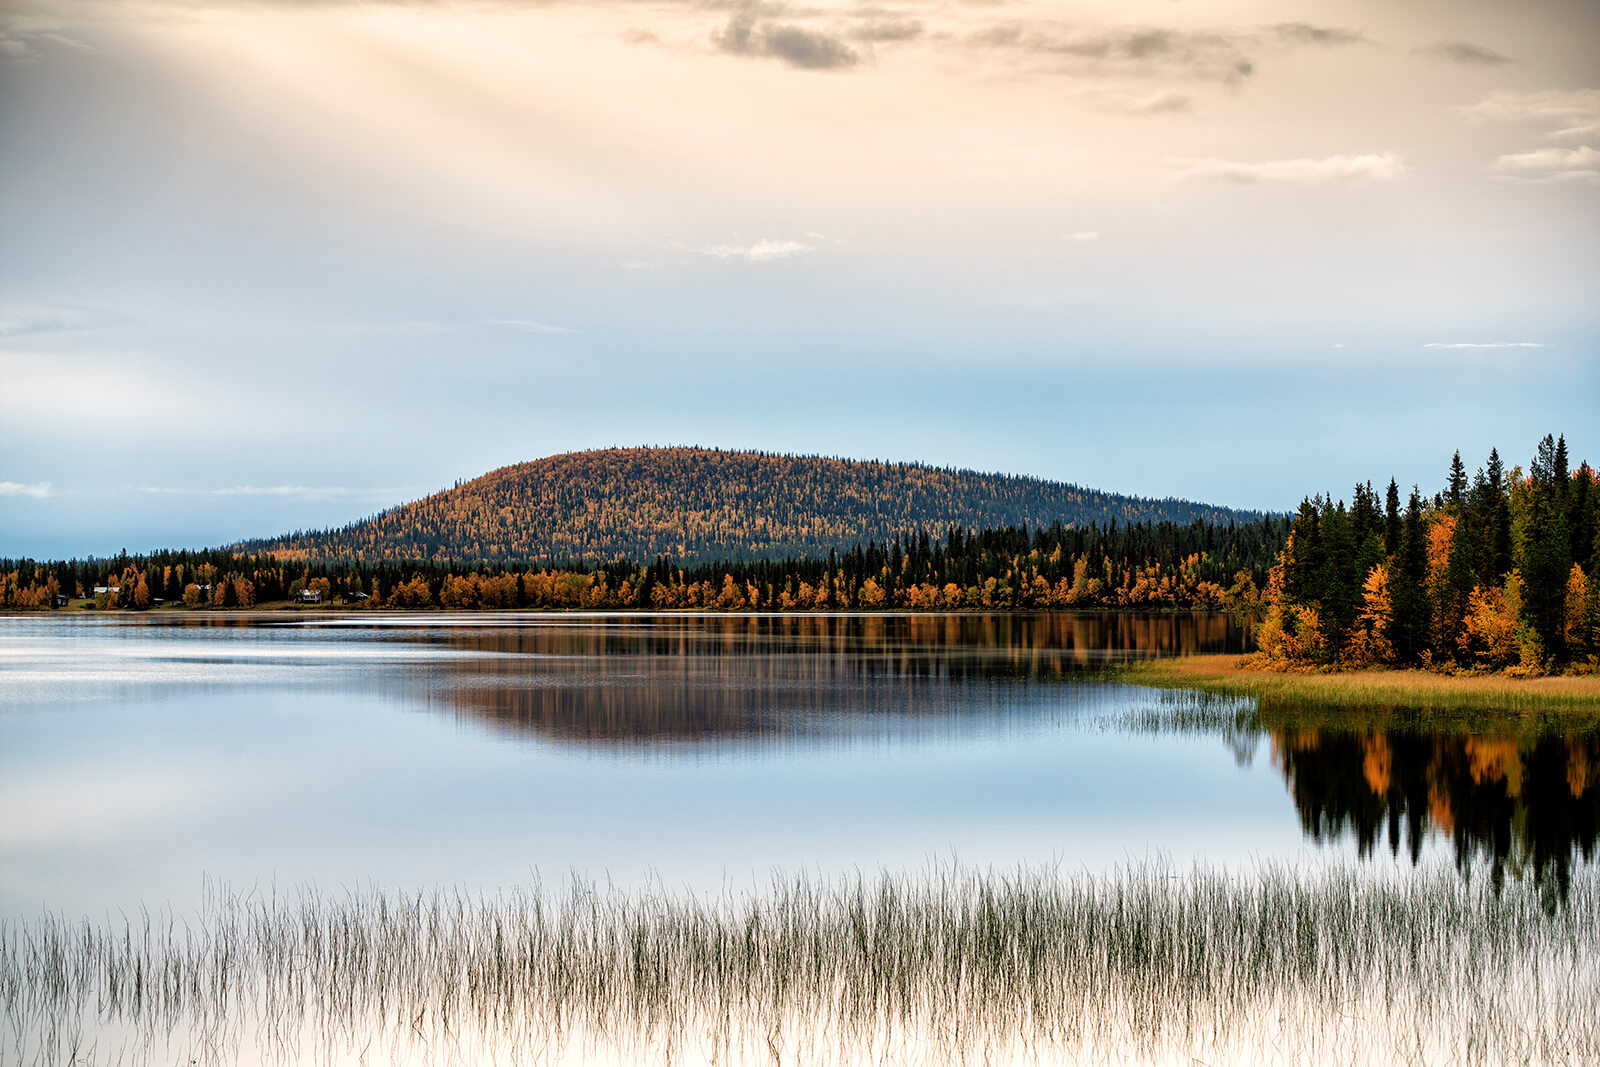 Scenic landscape from northern Sweden